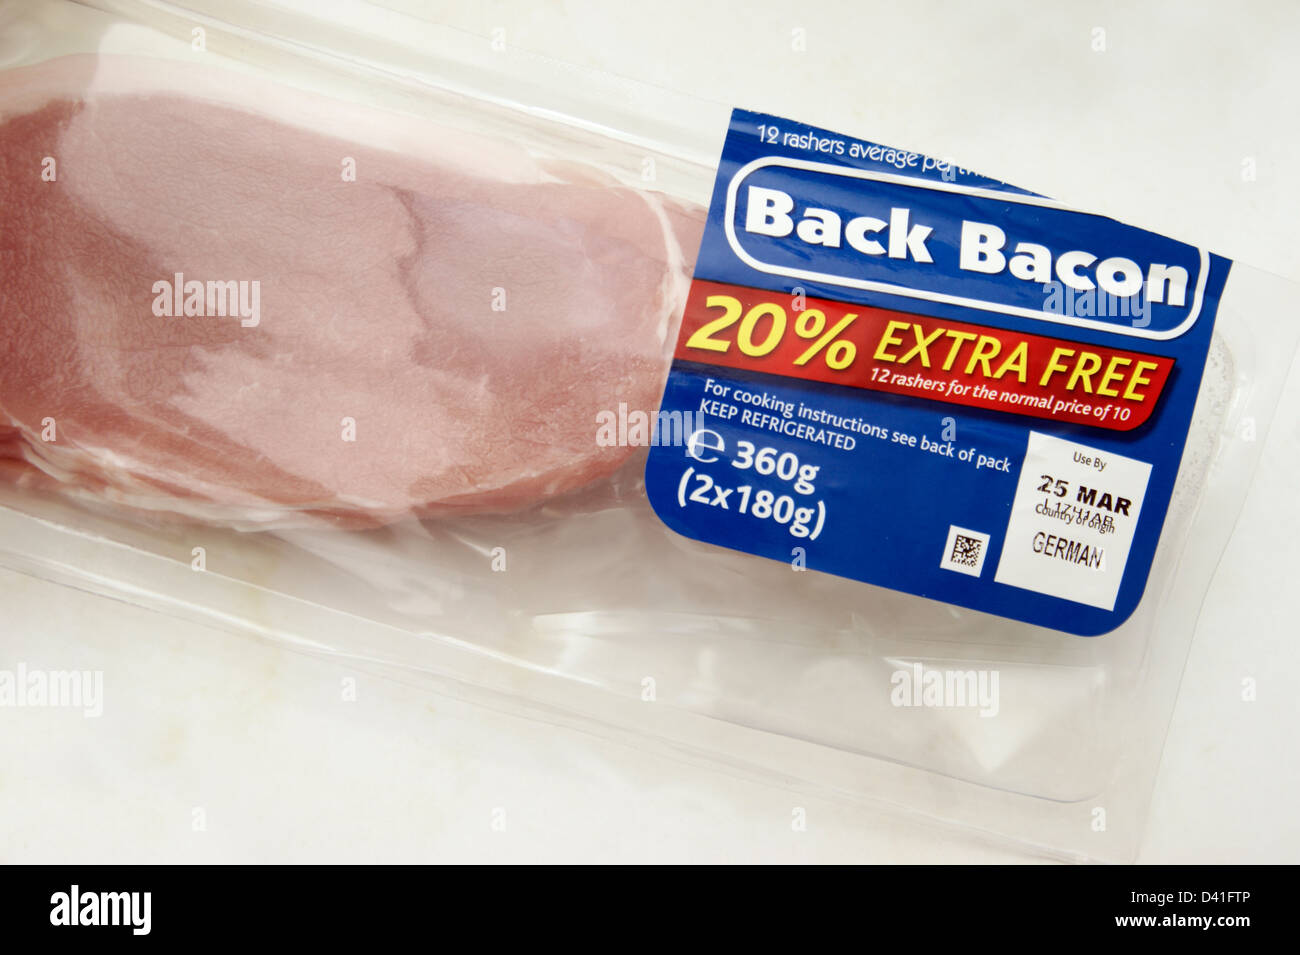 Pack of Back Bacon with 20% extra free 12 rashers for the price of 10 country of origin Germany - Stock Image